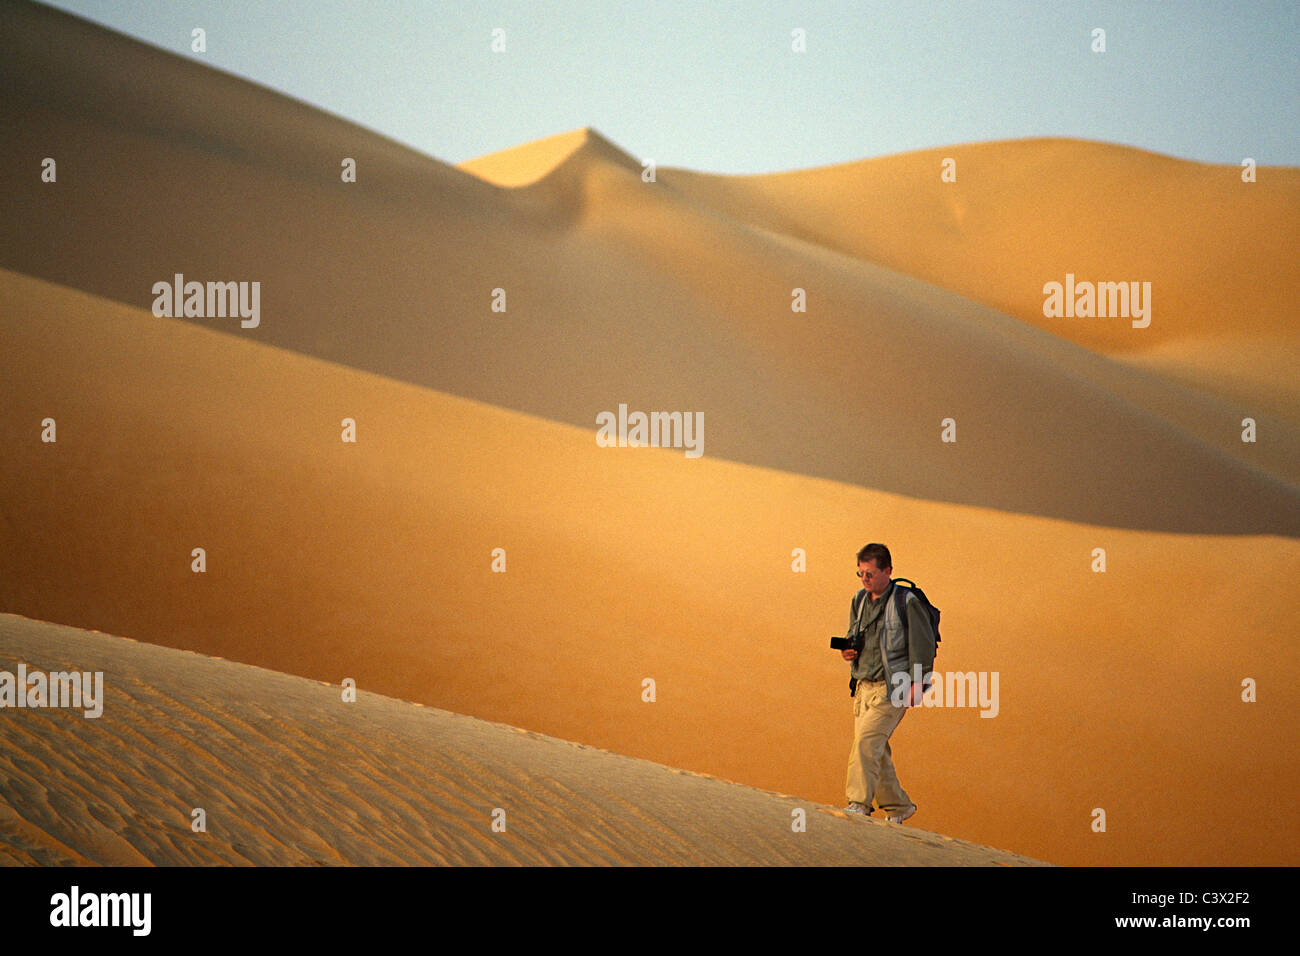 Algeria, Djanet, Sahara Desert, Photographer, man, walking on sand dune. - Stock Image